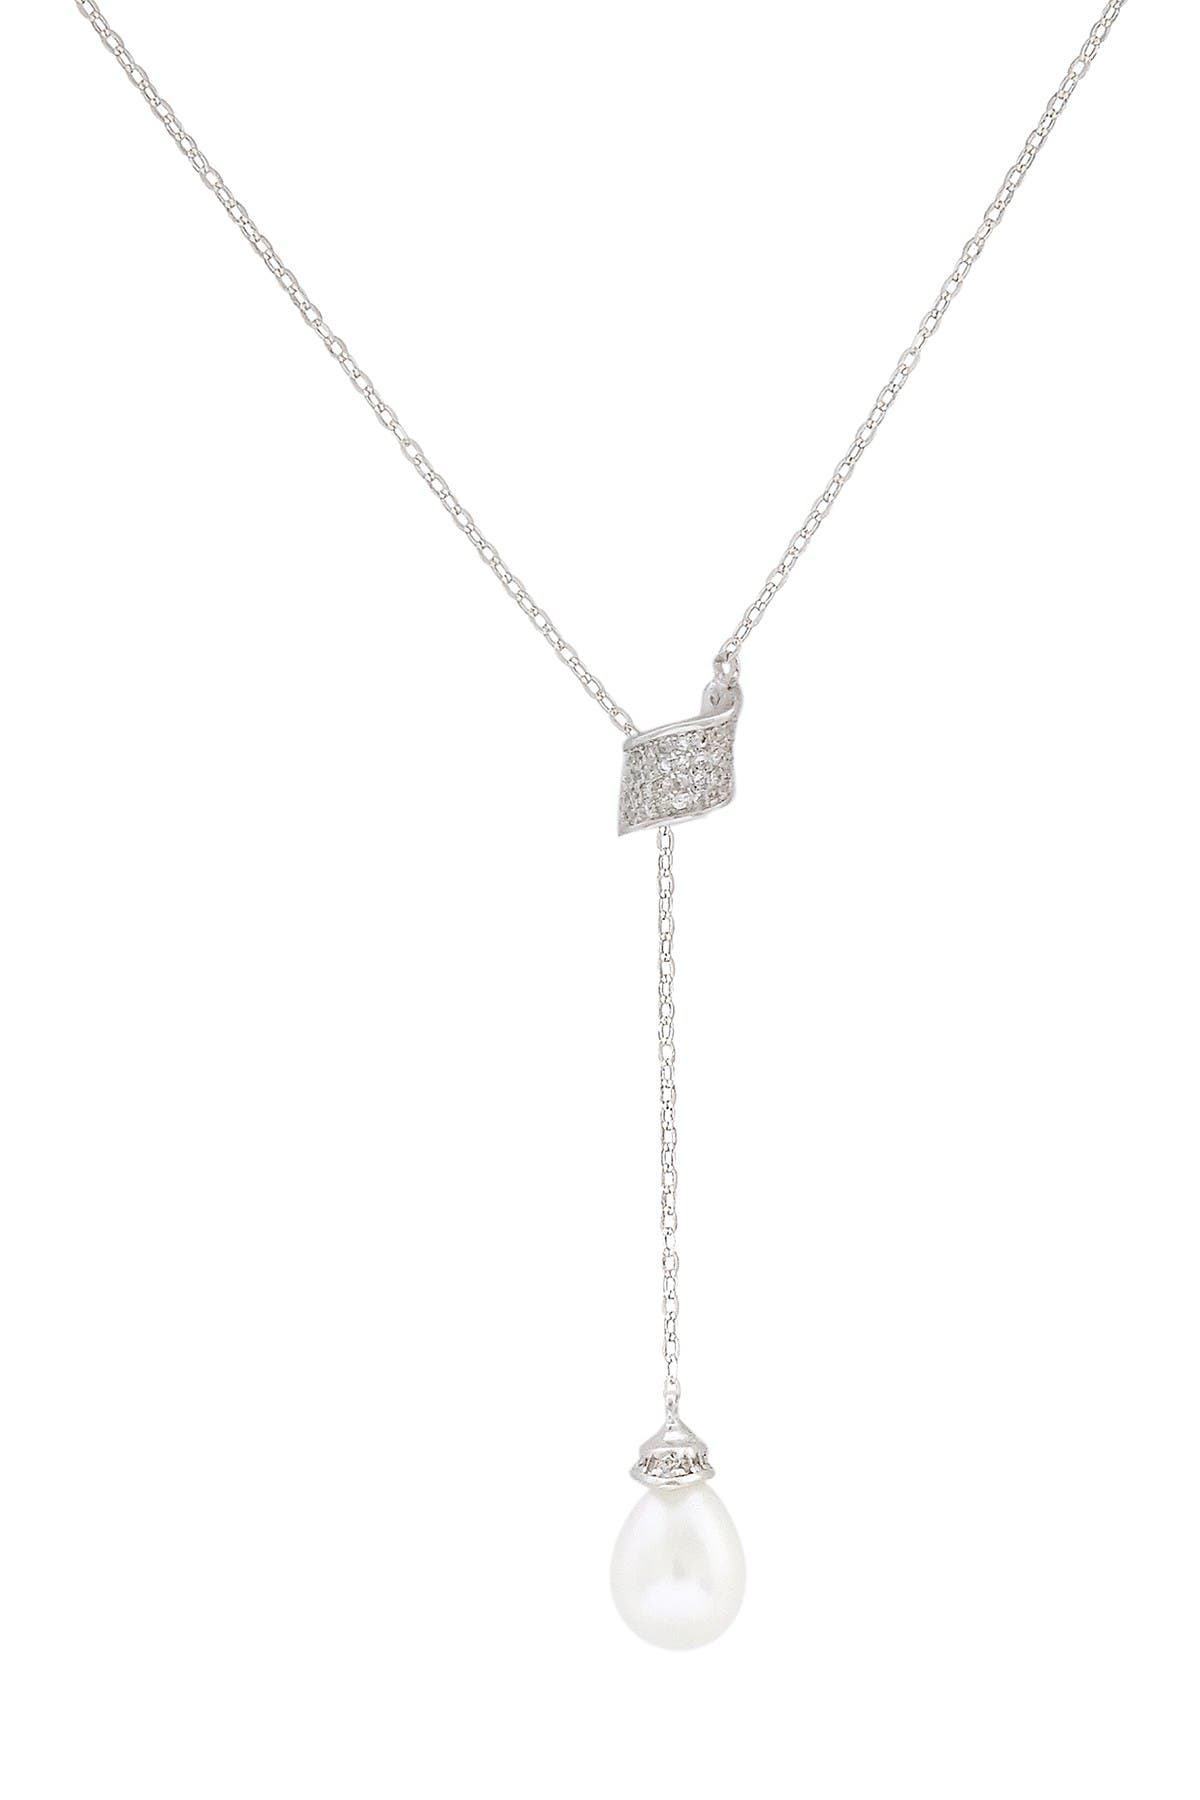 Image of Savvy Cie Sterling Silver Freshwater Pearl Lariat Necklace